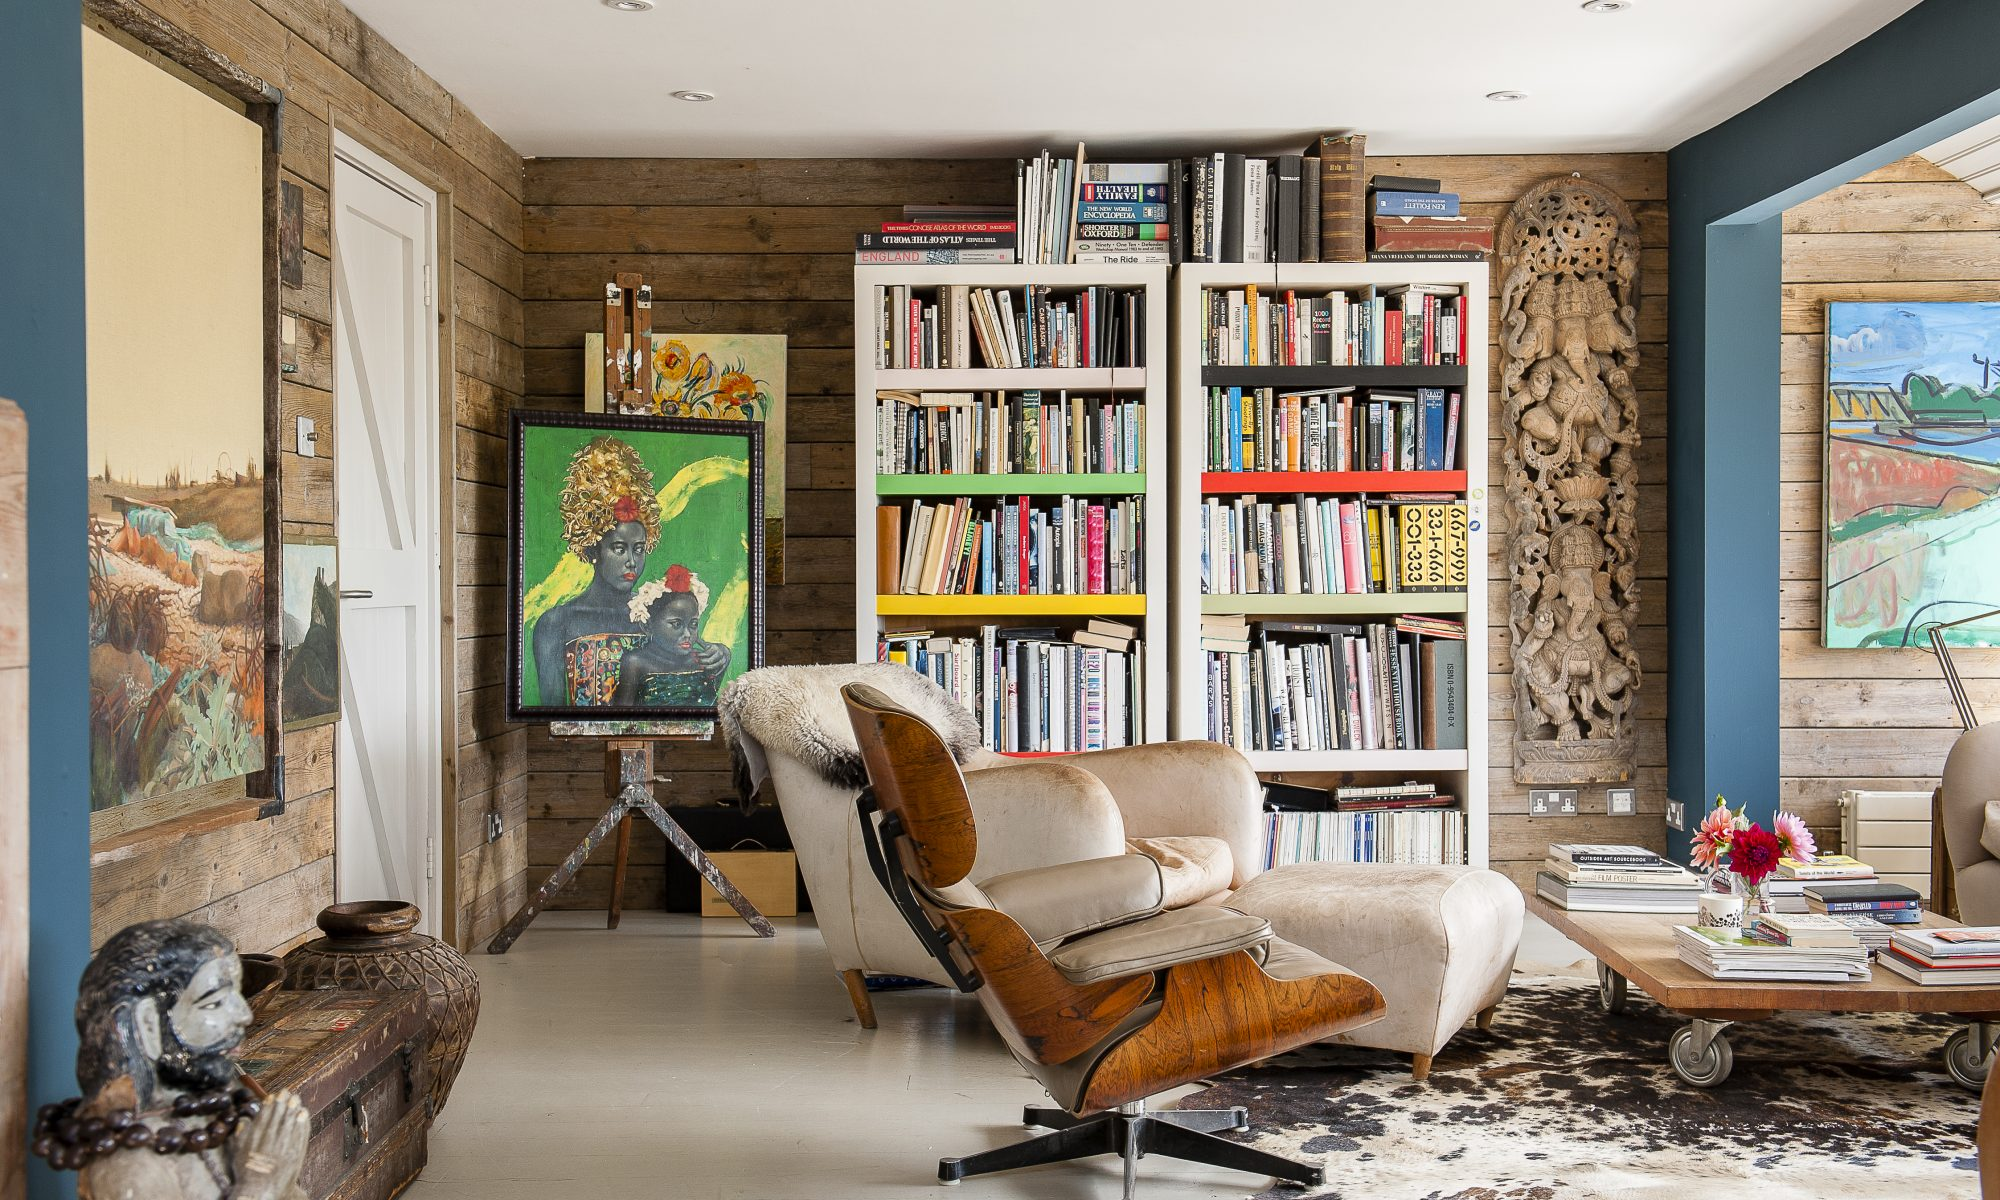 The wilder side of John and Anna's creativity comes out in their choice of artworks, with large scale original paintings – and some quirky eBay finds – in every room, mixed in with some very special photographs